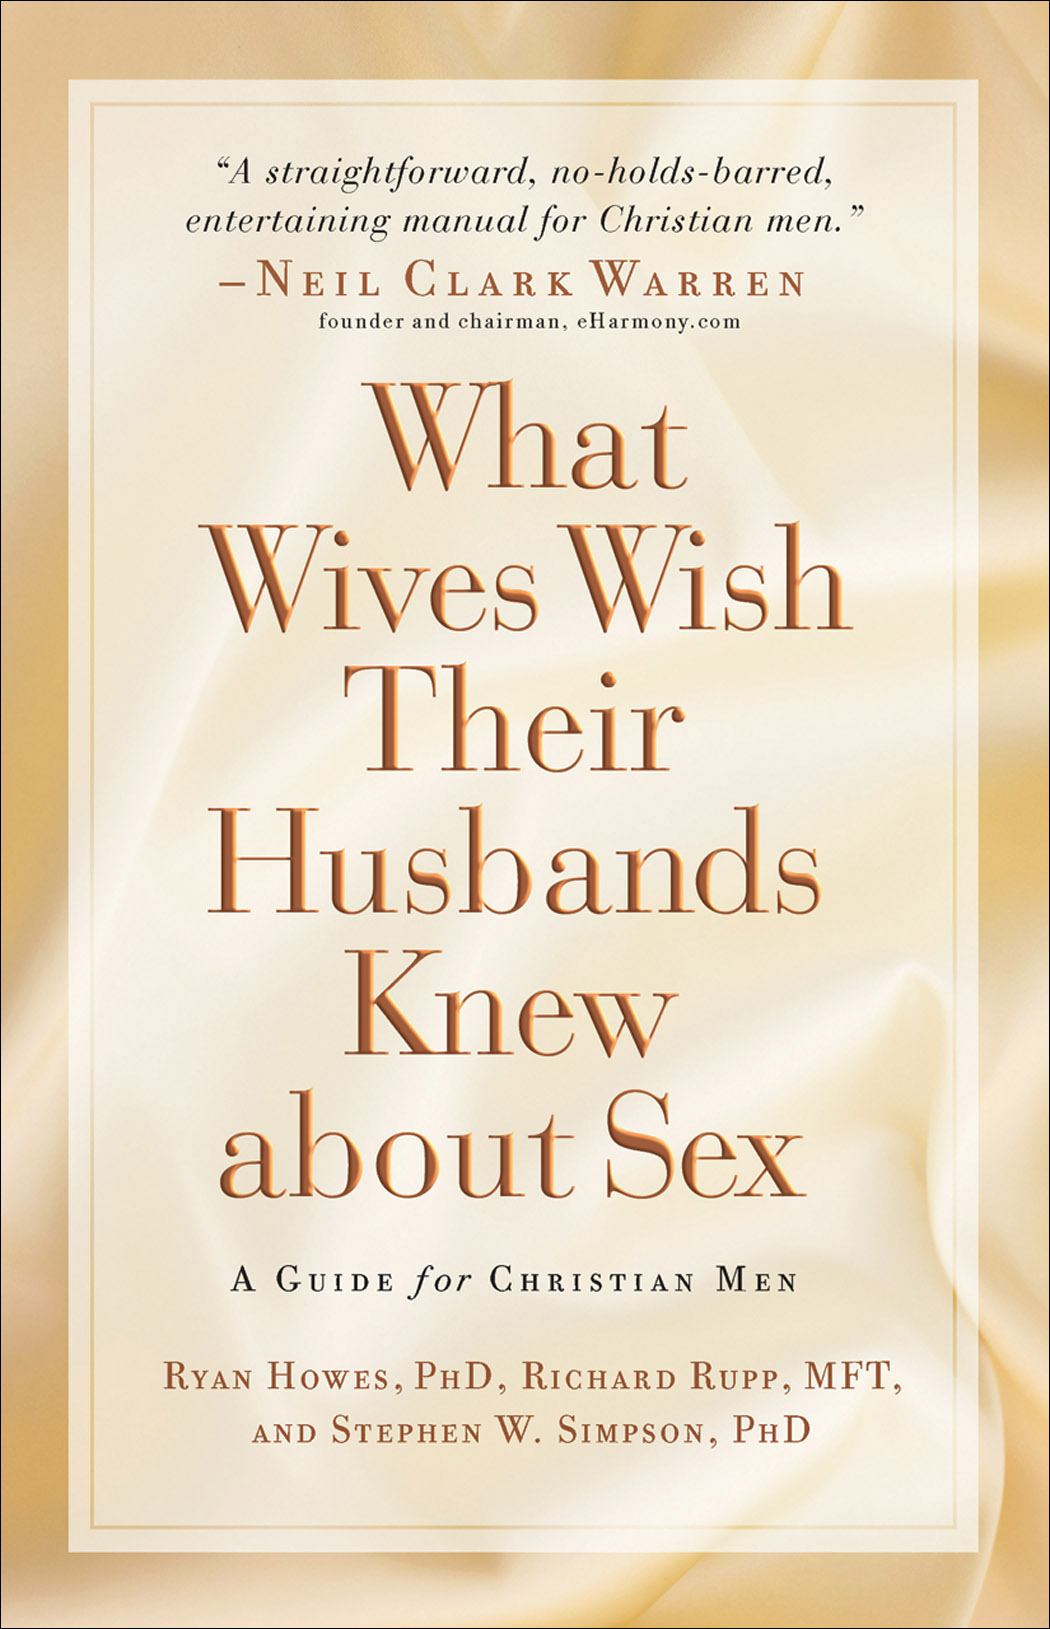 What wives wish their husbands knew about sex baker publishing group print email download cover fandeluxe Choice Image